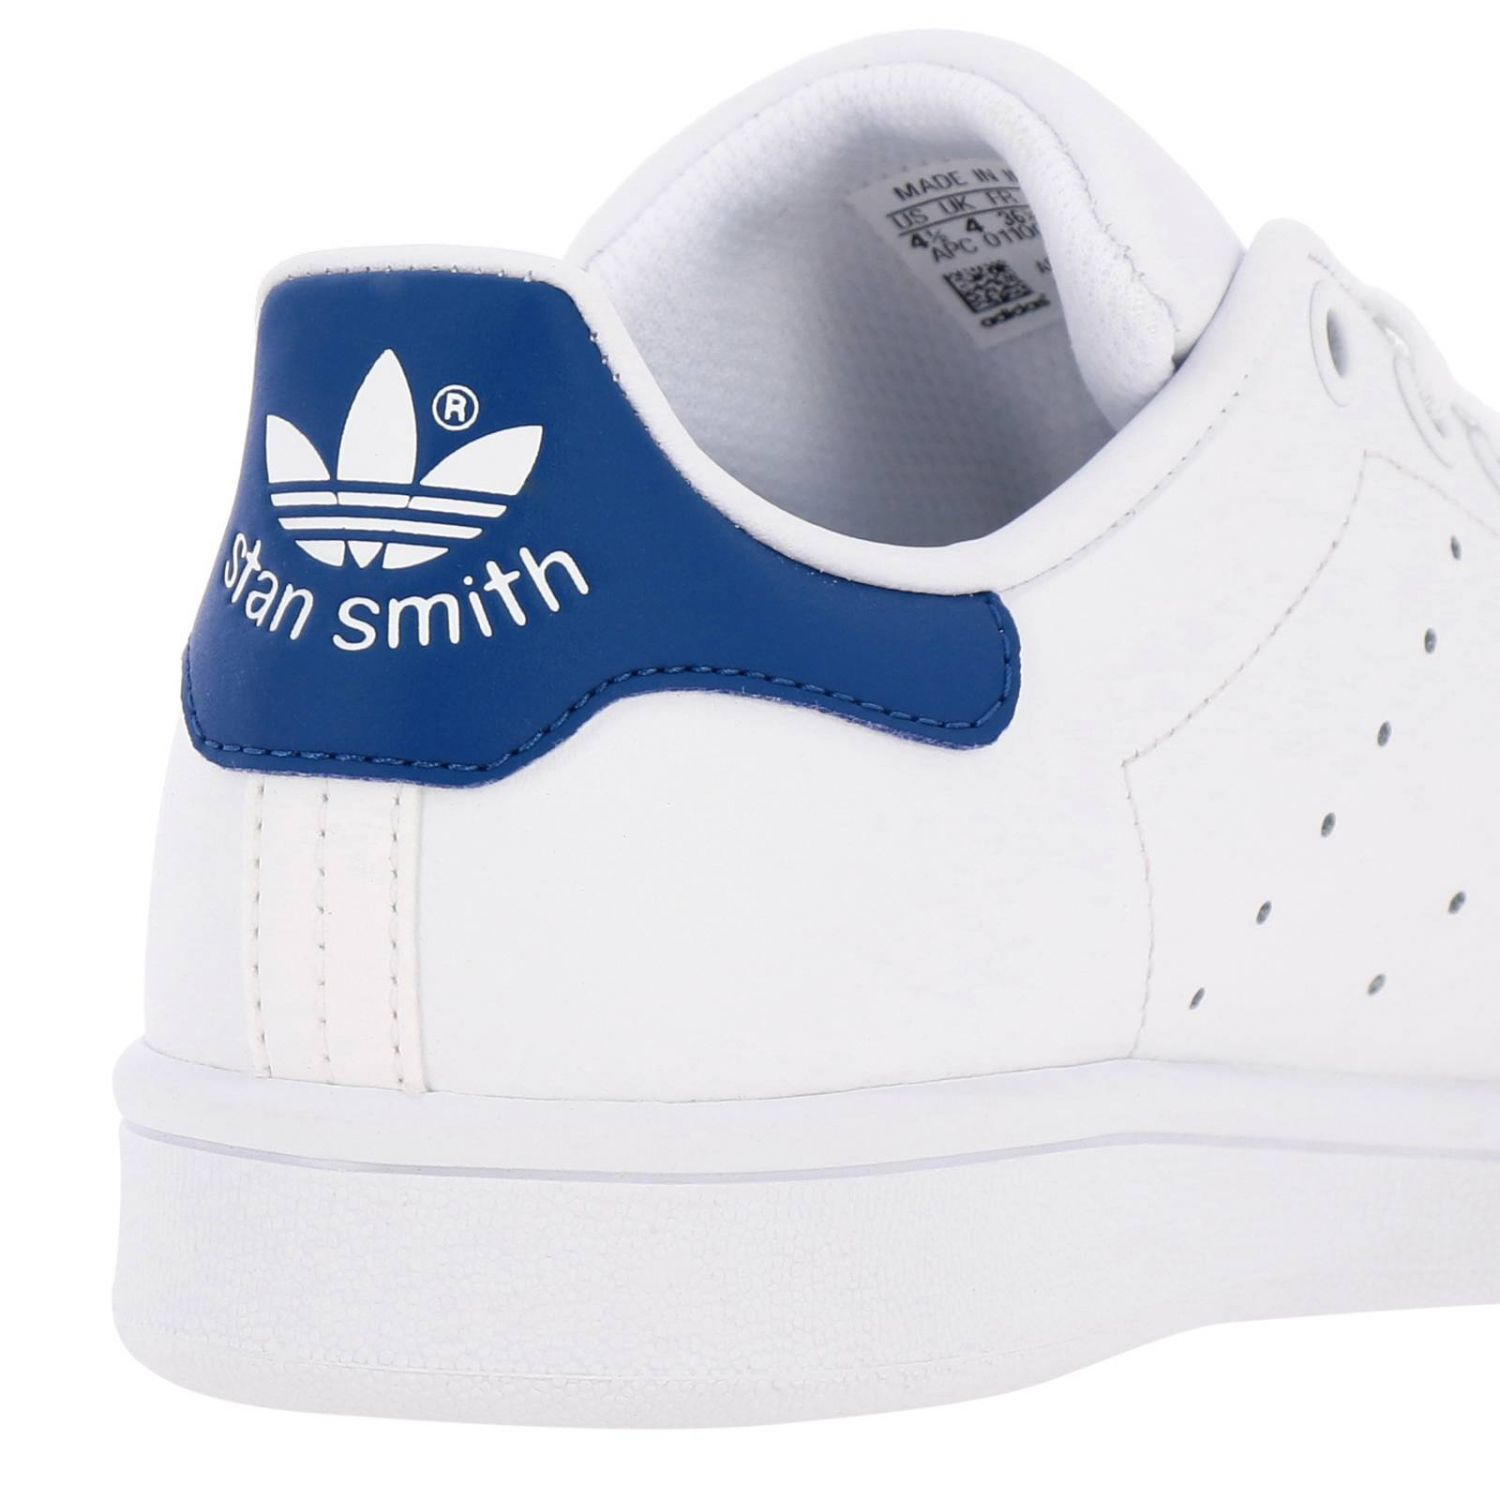 Zapatos Adidas Originals: Zapatillas Stan Smith J Adidas Originals de cuero con tacón en contraste blanco 4